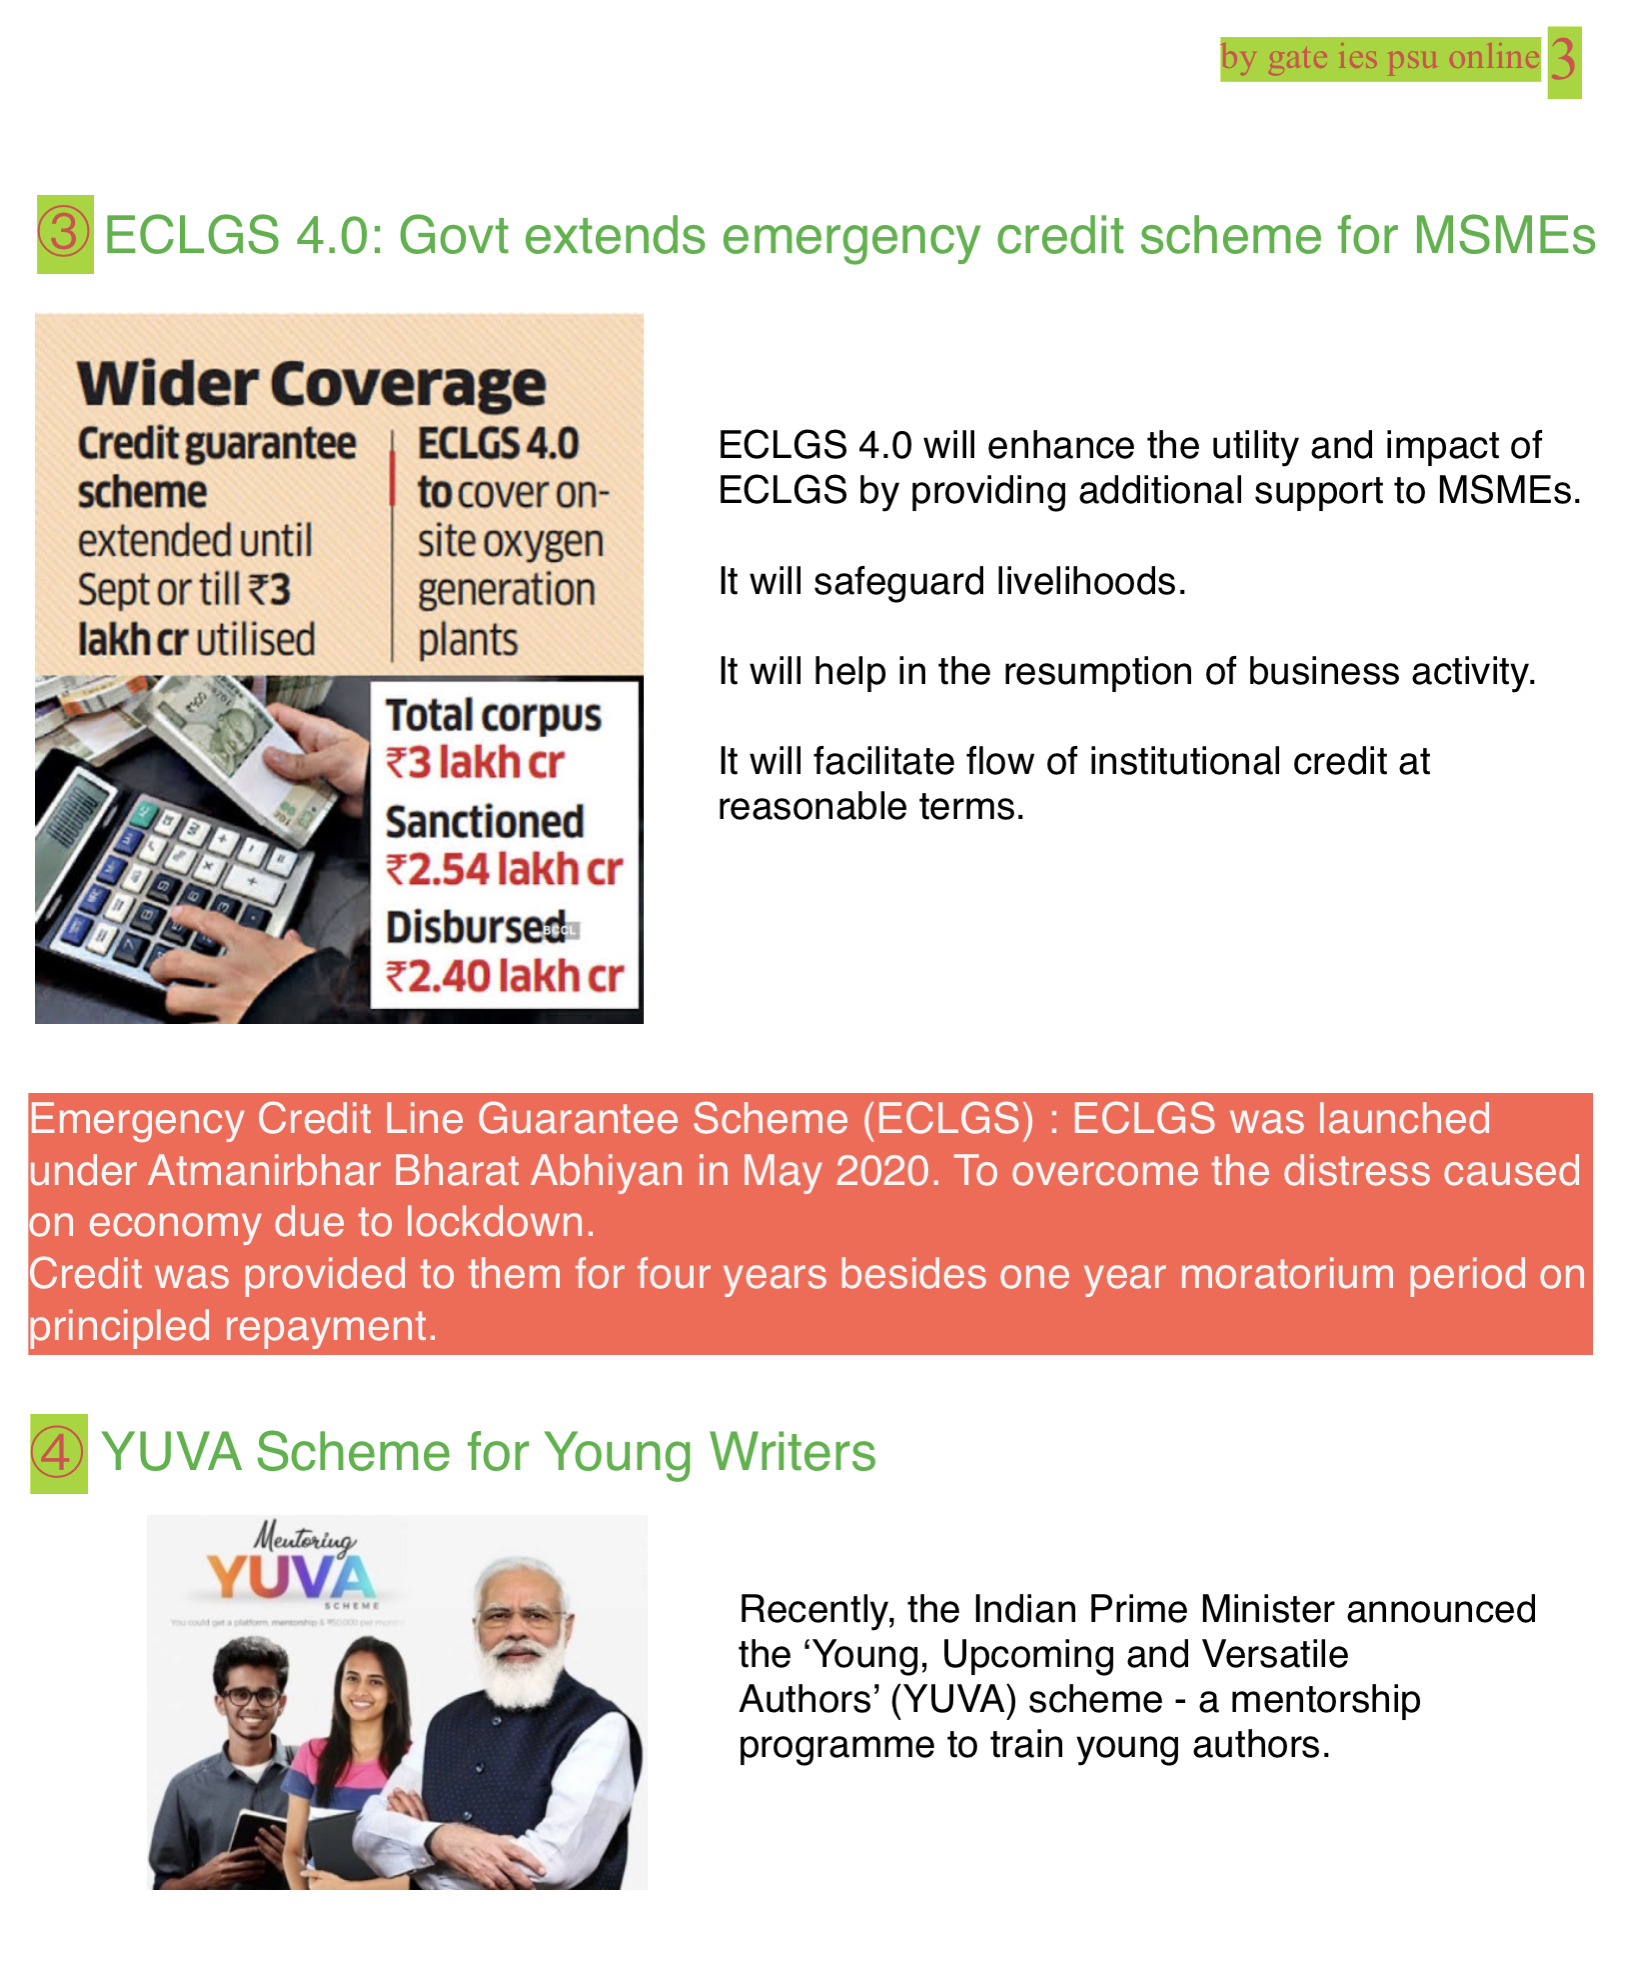 ECLGS 4, YUVA SCHEME, MAY 2021 CURRENT AFFAIRS FOR IES IRMS 2022